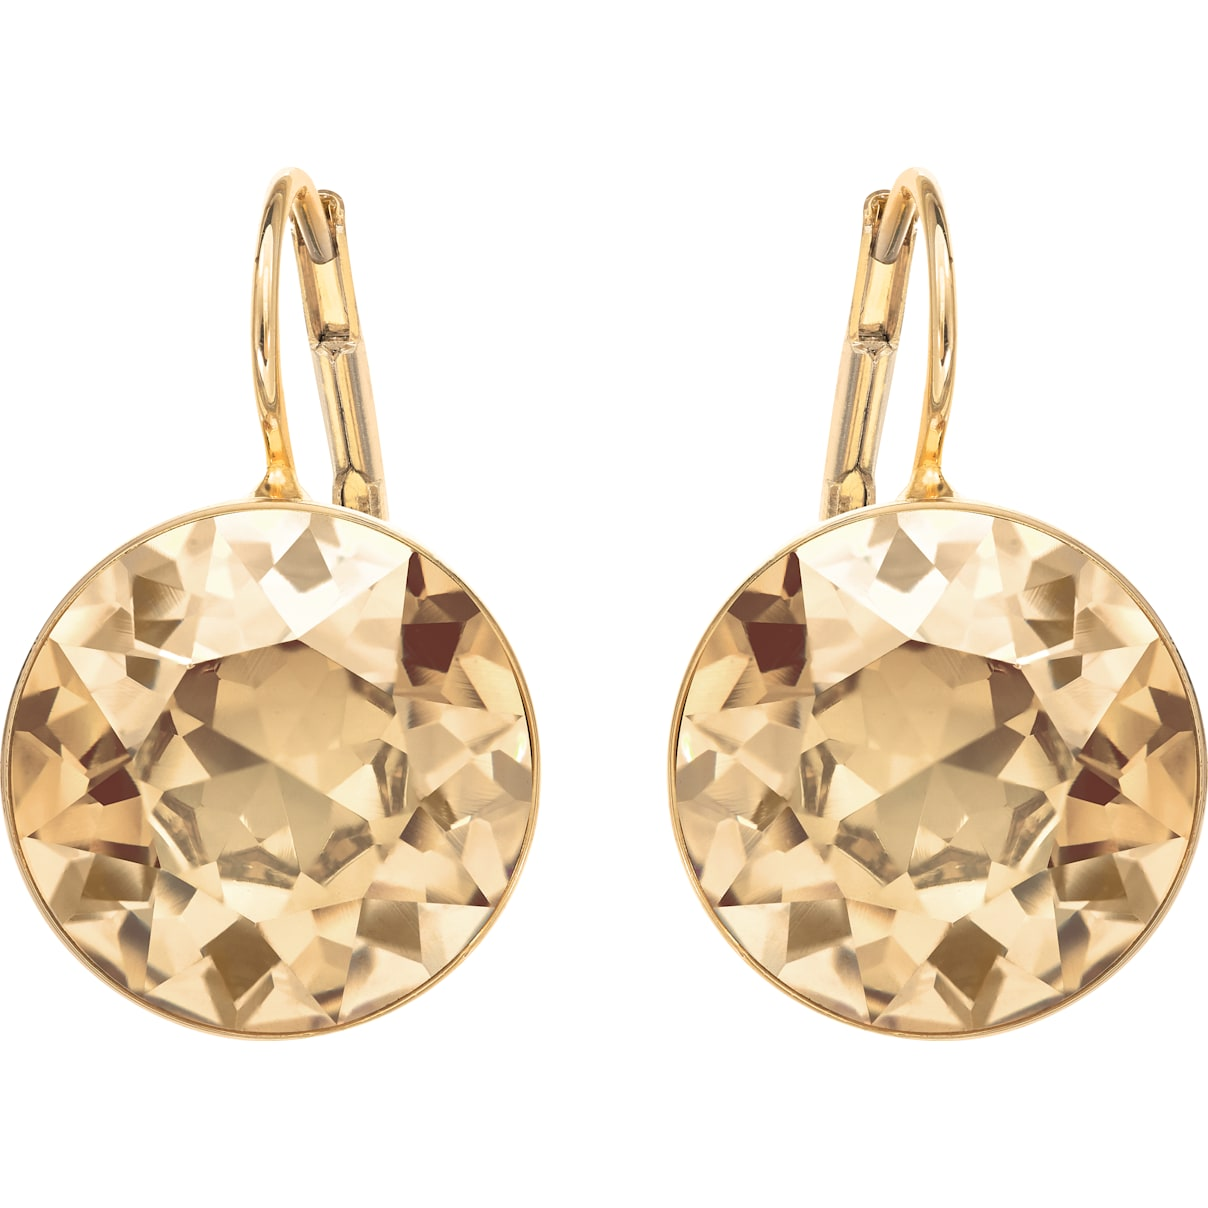 Swarovski Bella Pierced Earrings, Brown, Gold-tone plated